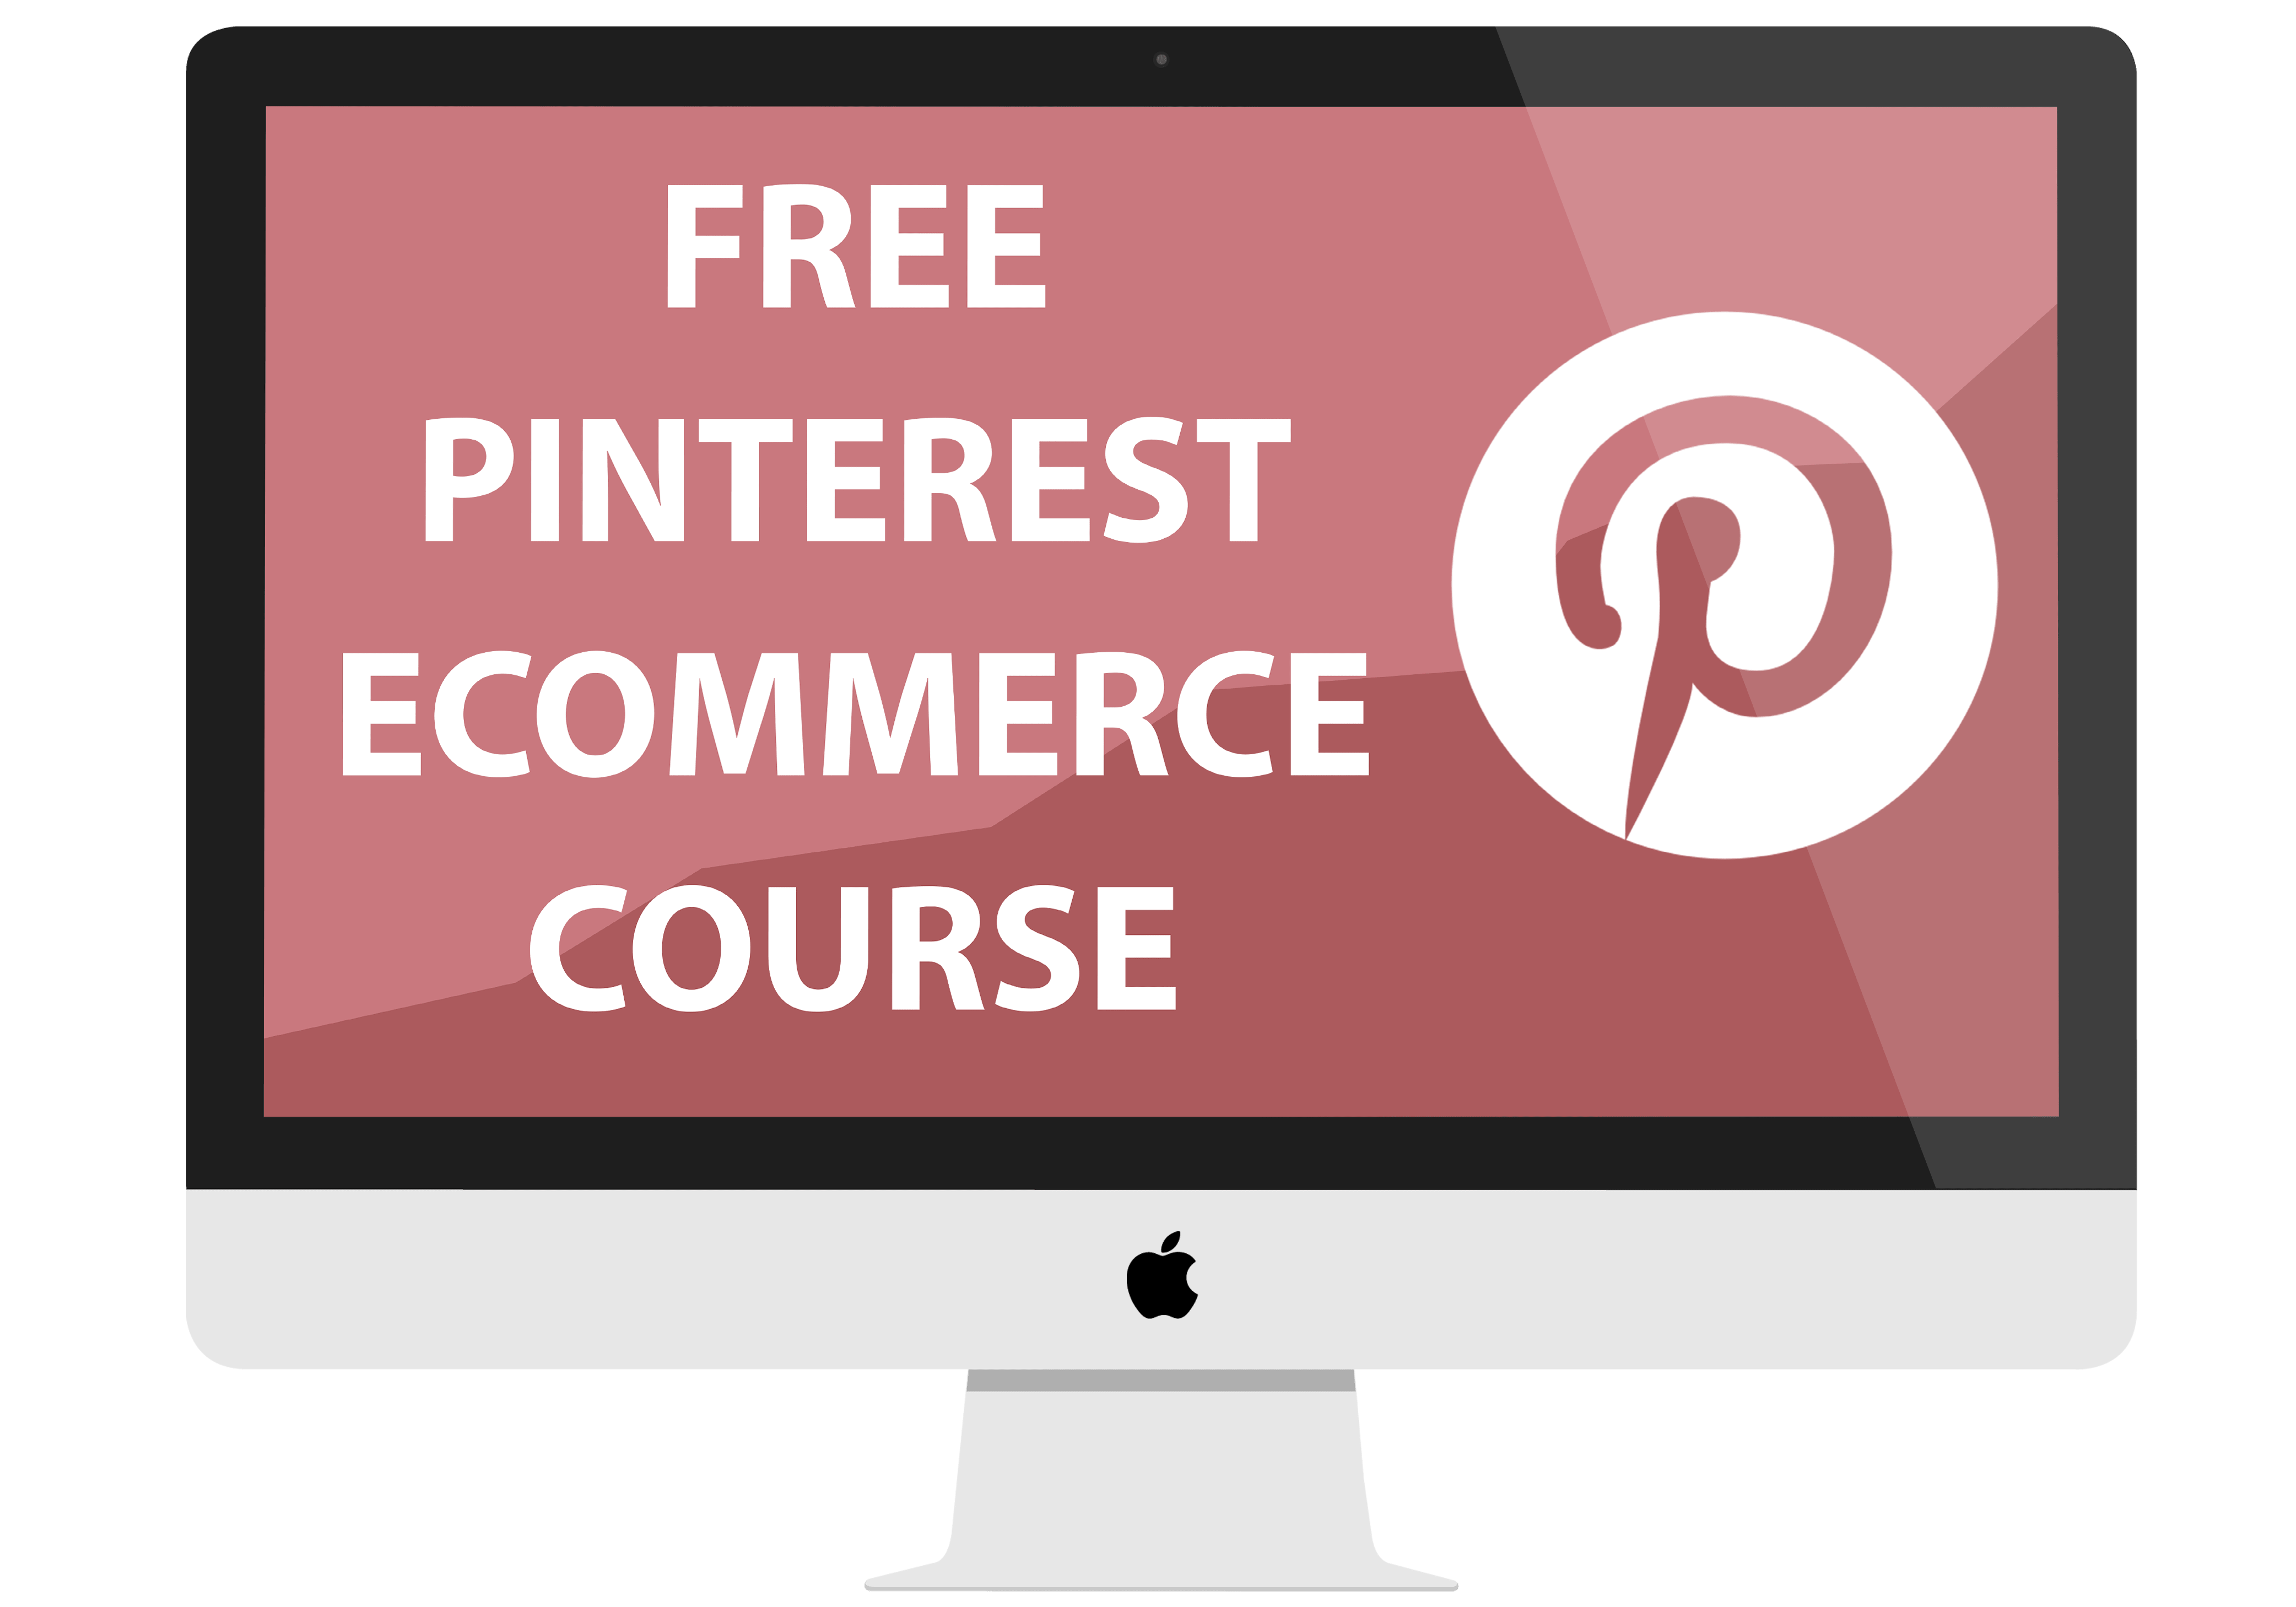 Free Pinterest Course for ecommerce